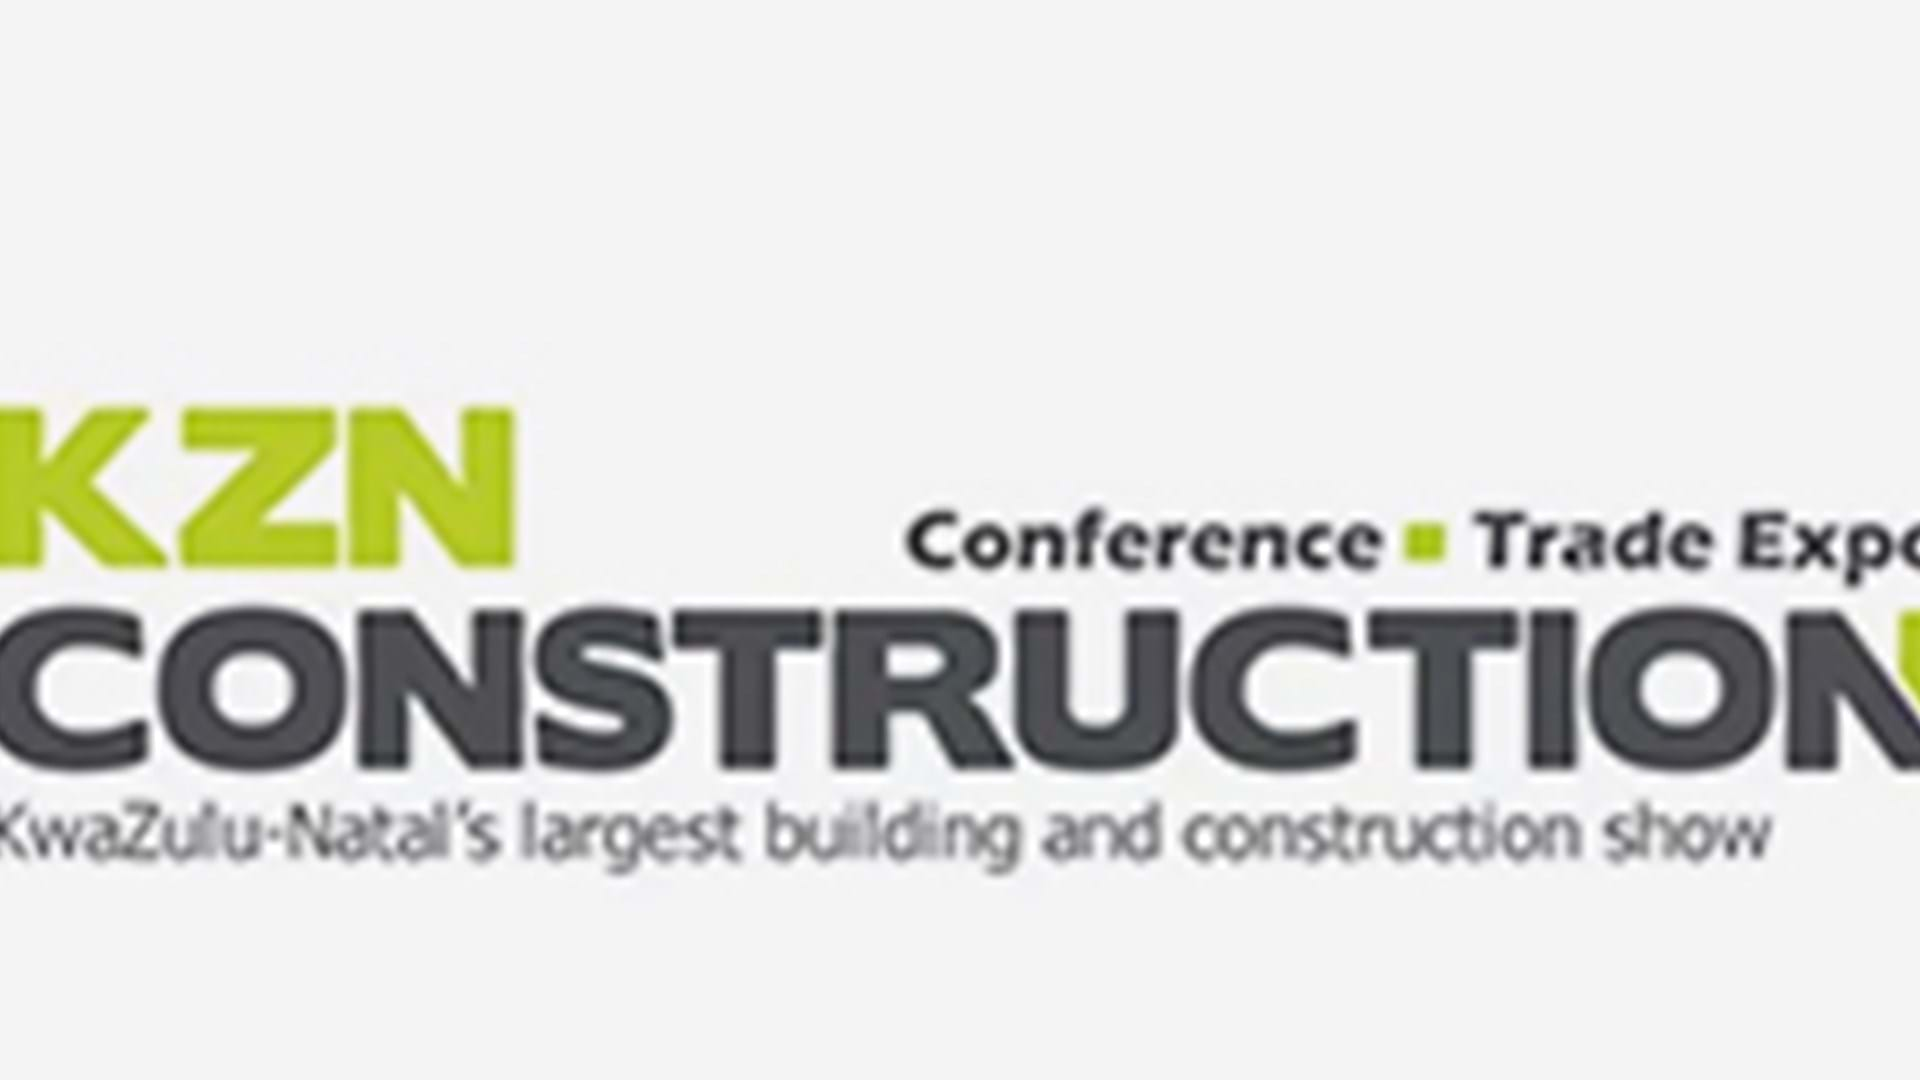 KZN Construction Conference Trade Expo logo, with tagline KwaZulu-Natal's largest building and construction show.